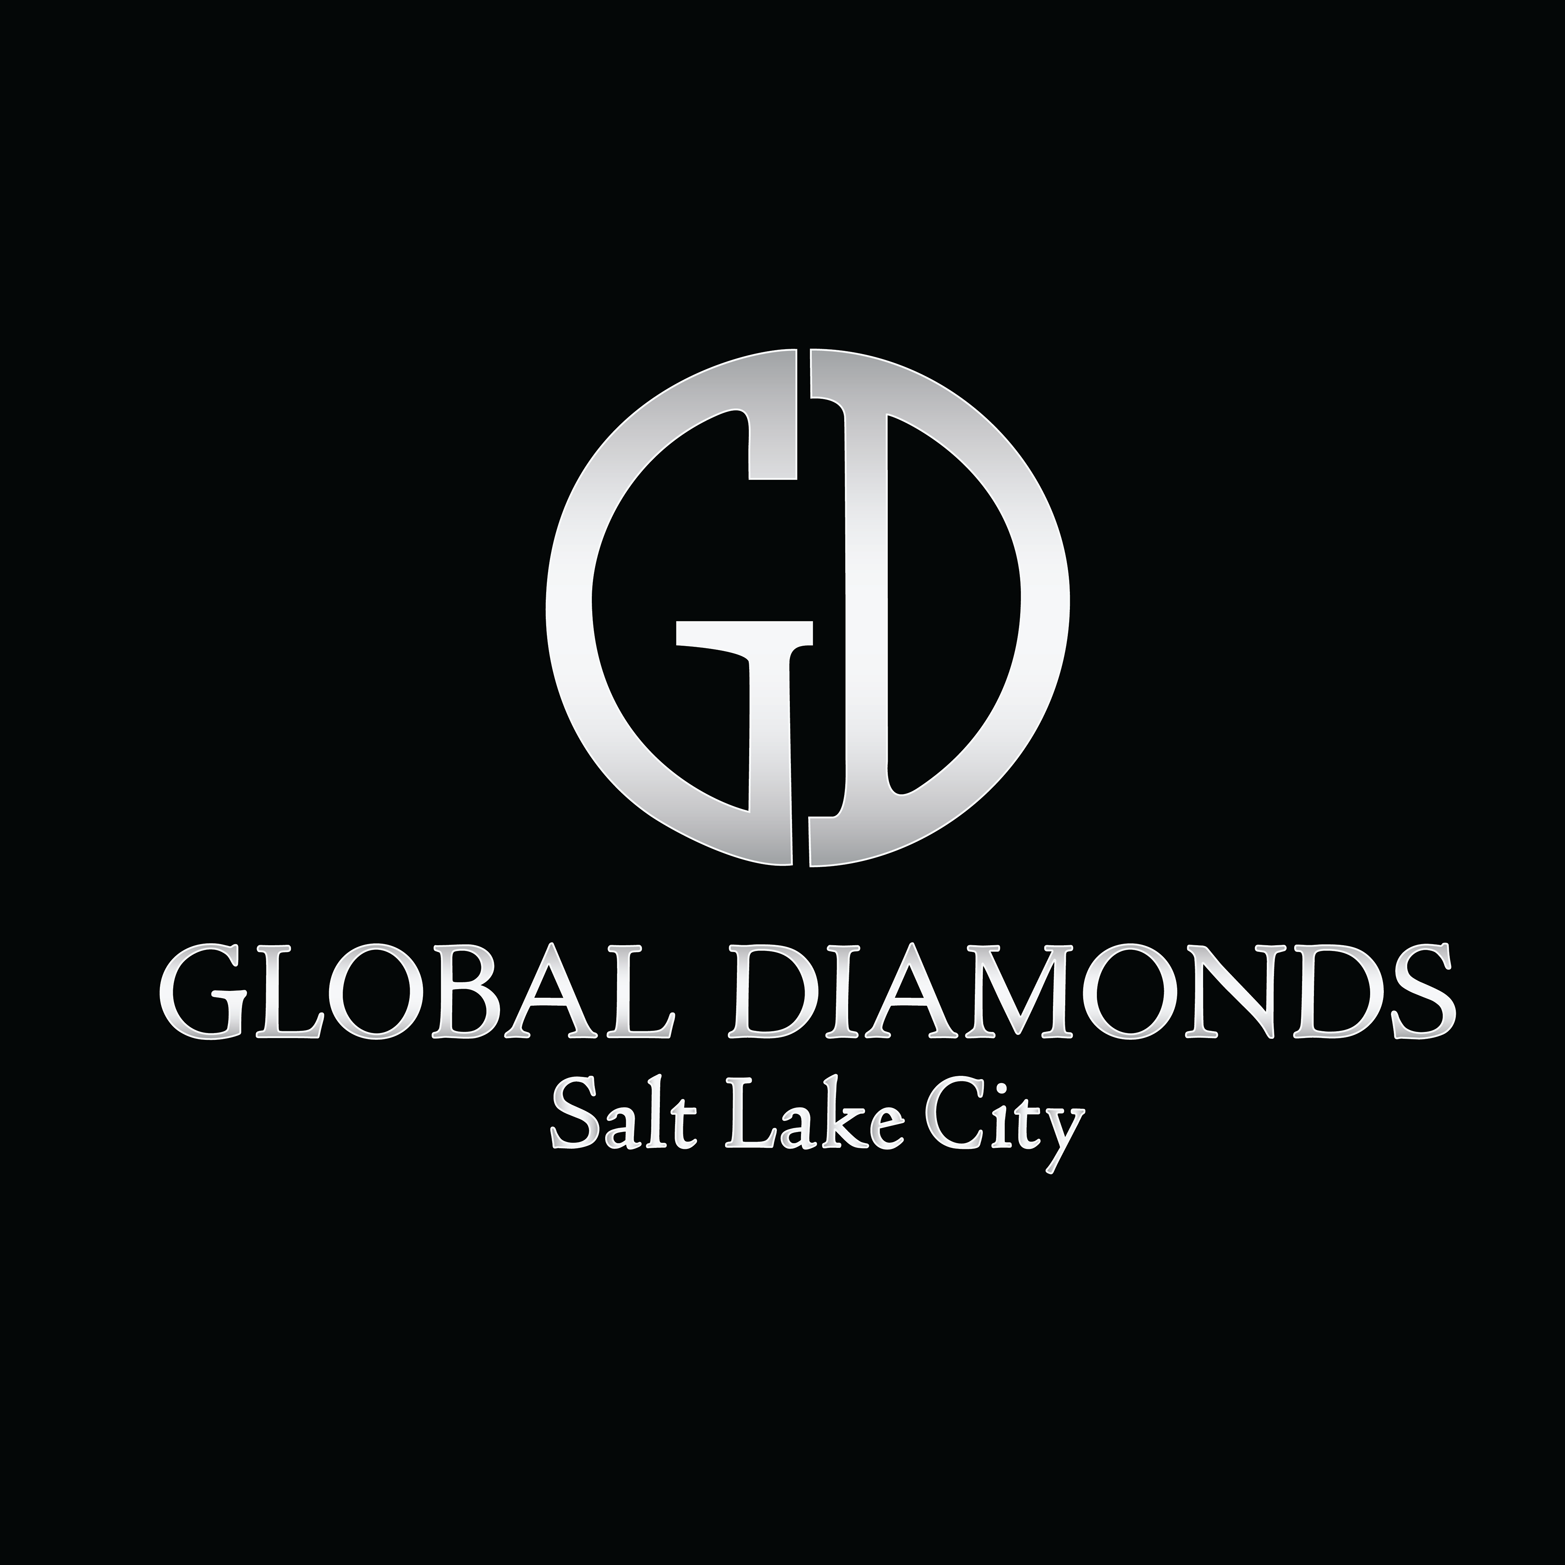 Global Diamonds Salt Lake City - Murray, UT 84107 - (385)388-4353 | ShowMeLocal.com